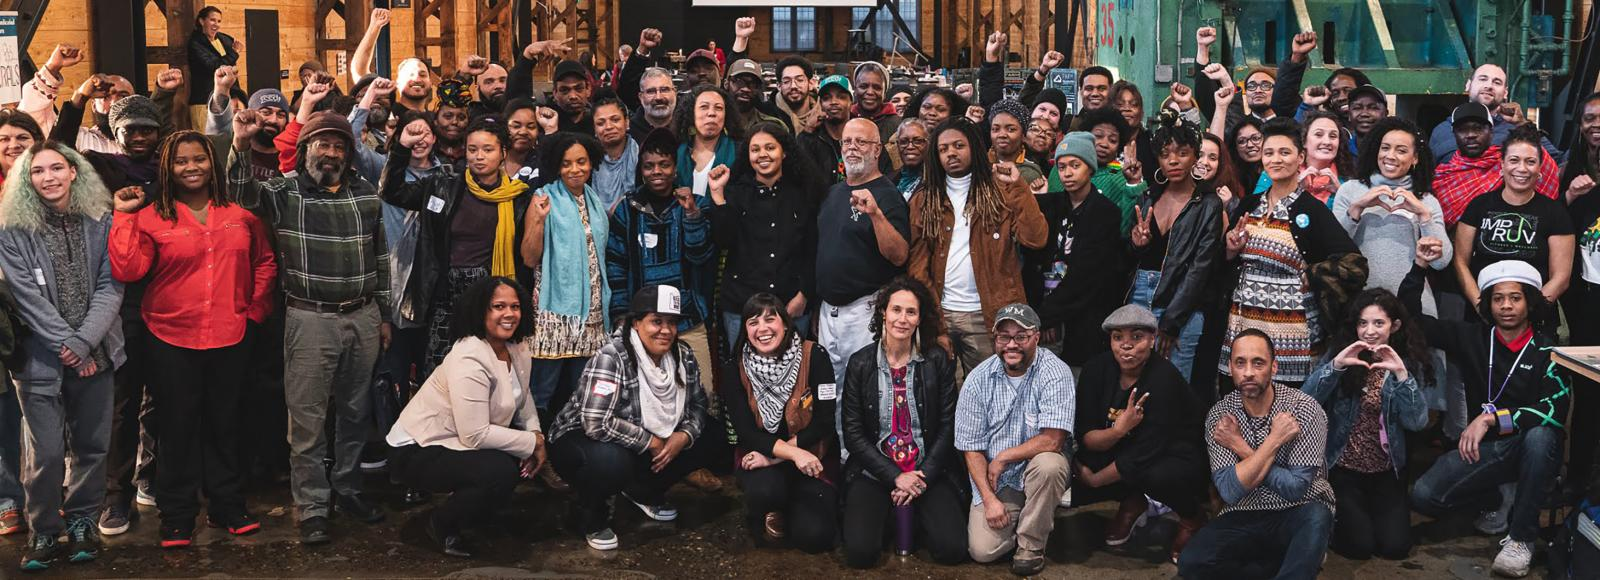 Back to the Root 2020 was a powerful opportunity for BIPOC farmers, ranchers, educators, and advocates to gather, network, discuss experiences, build strategies, and learn about our history and our opportunities. Photo by Noah Thomas